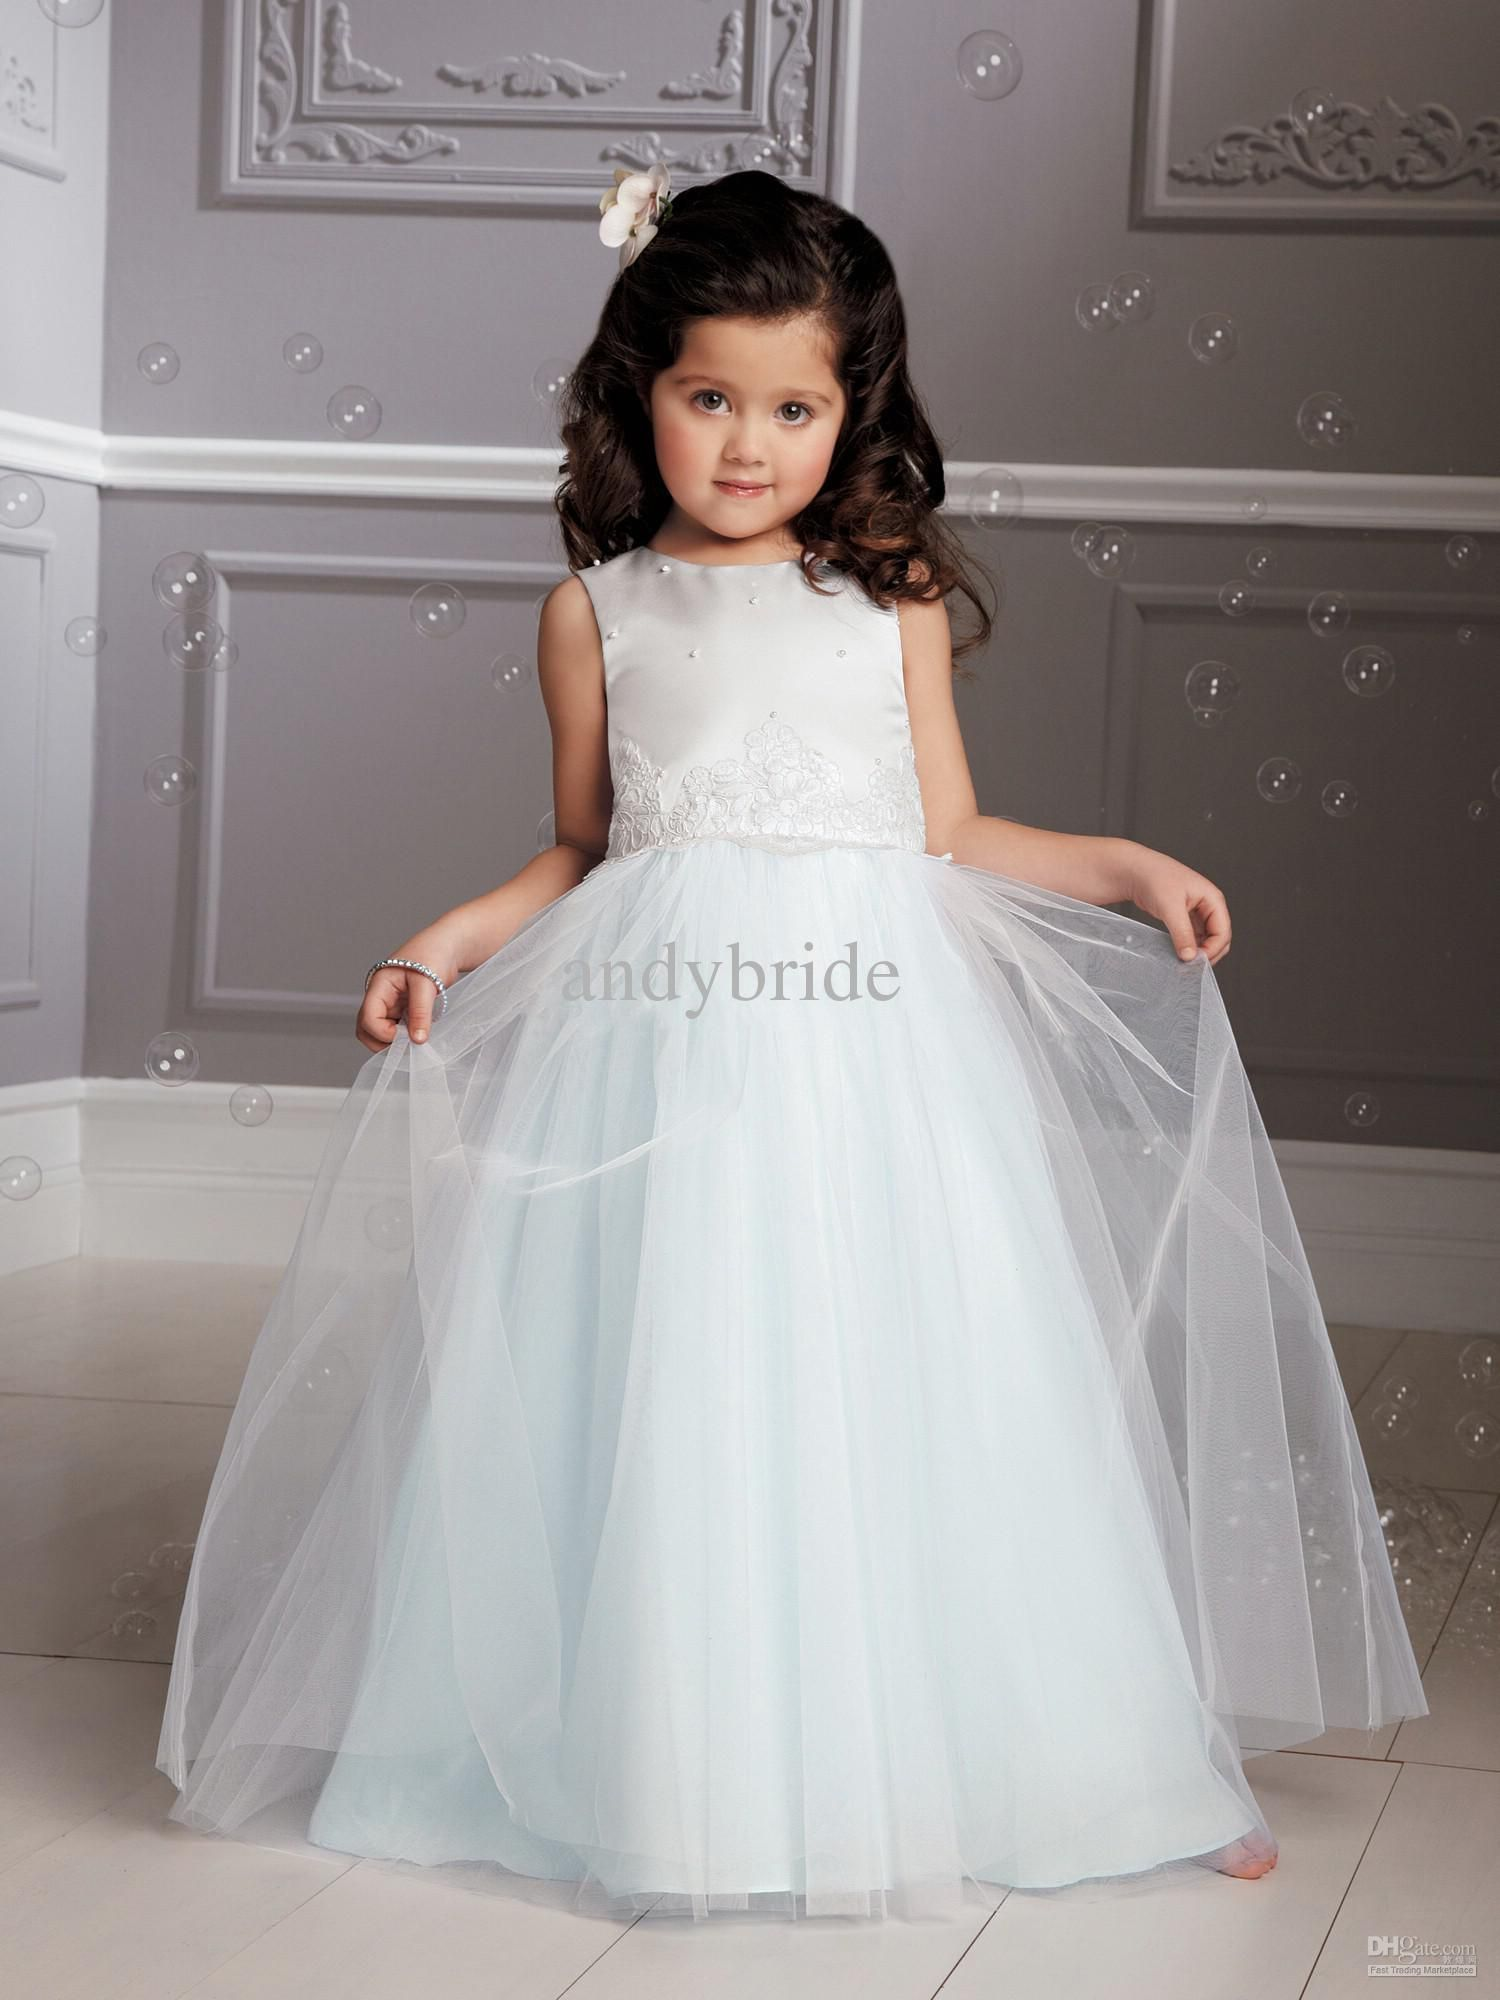 Really really like this dress bridesmaid dresses pinterest explore tulle flowers girls dresses and more ombrellifo Choice Image